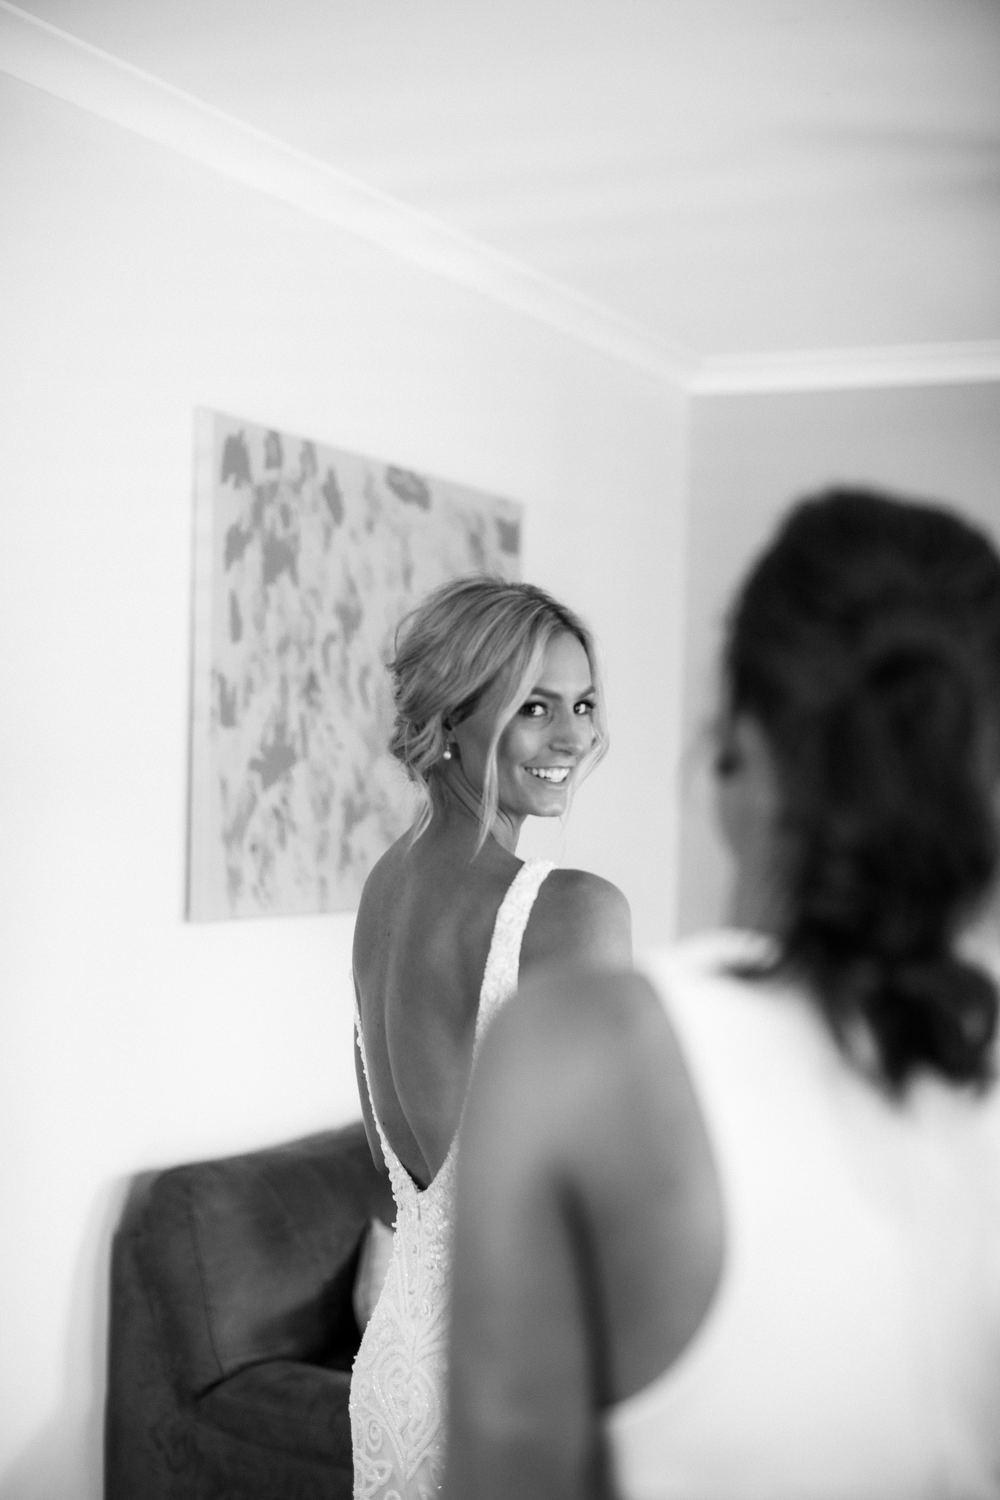 JuliaArchibald_WeddingPhotography_Melbourne_Australia_03.jpg